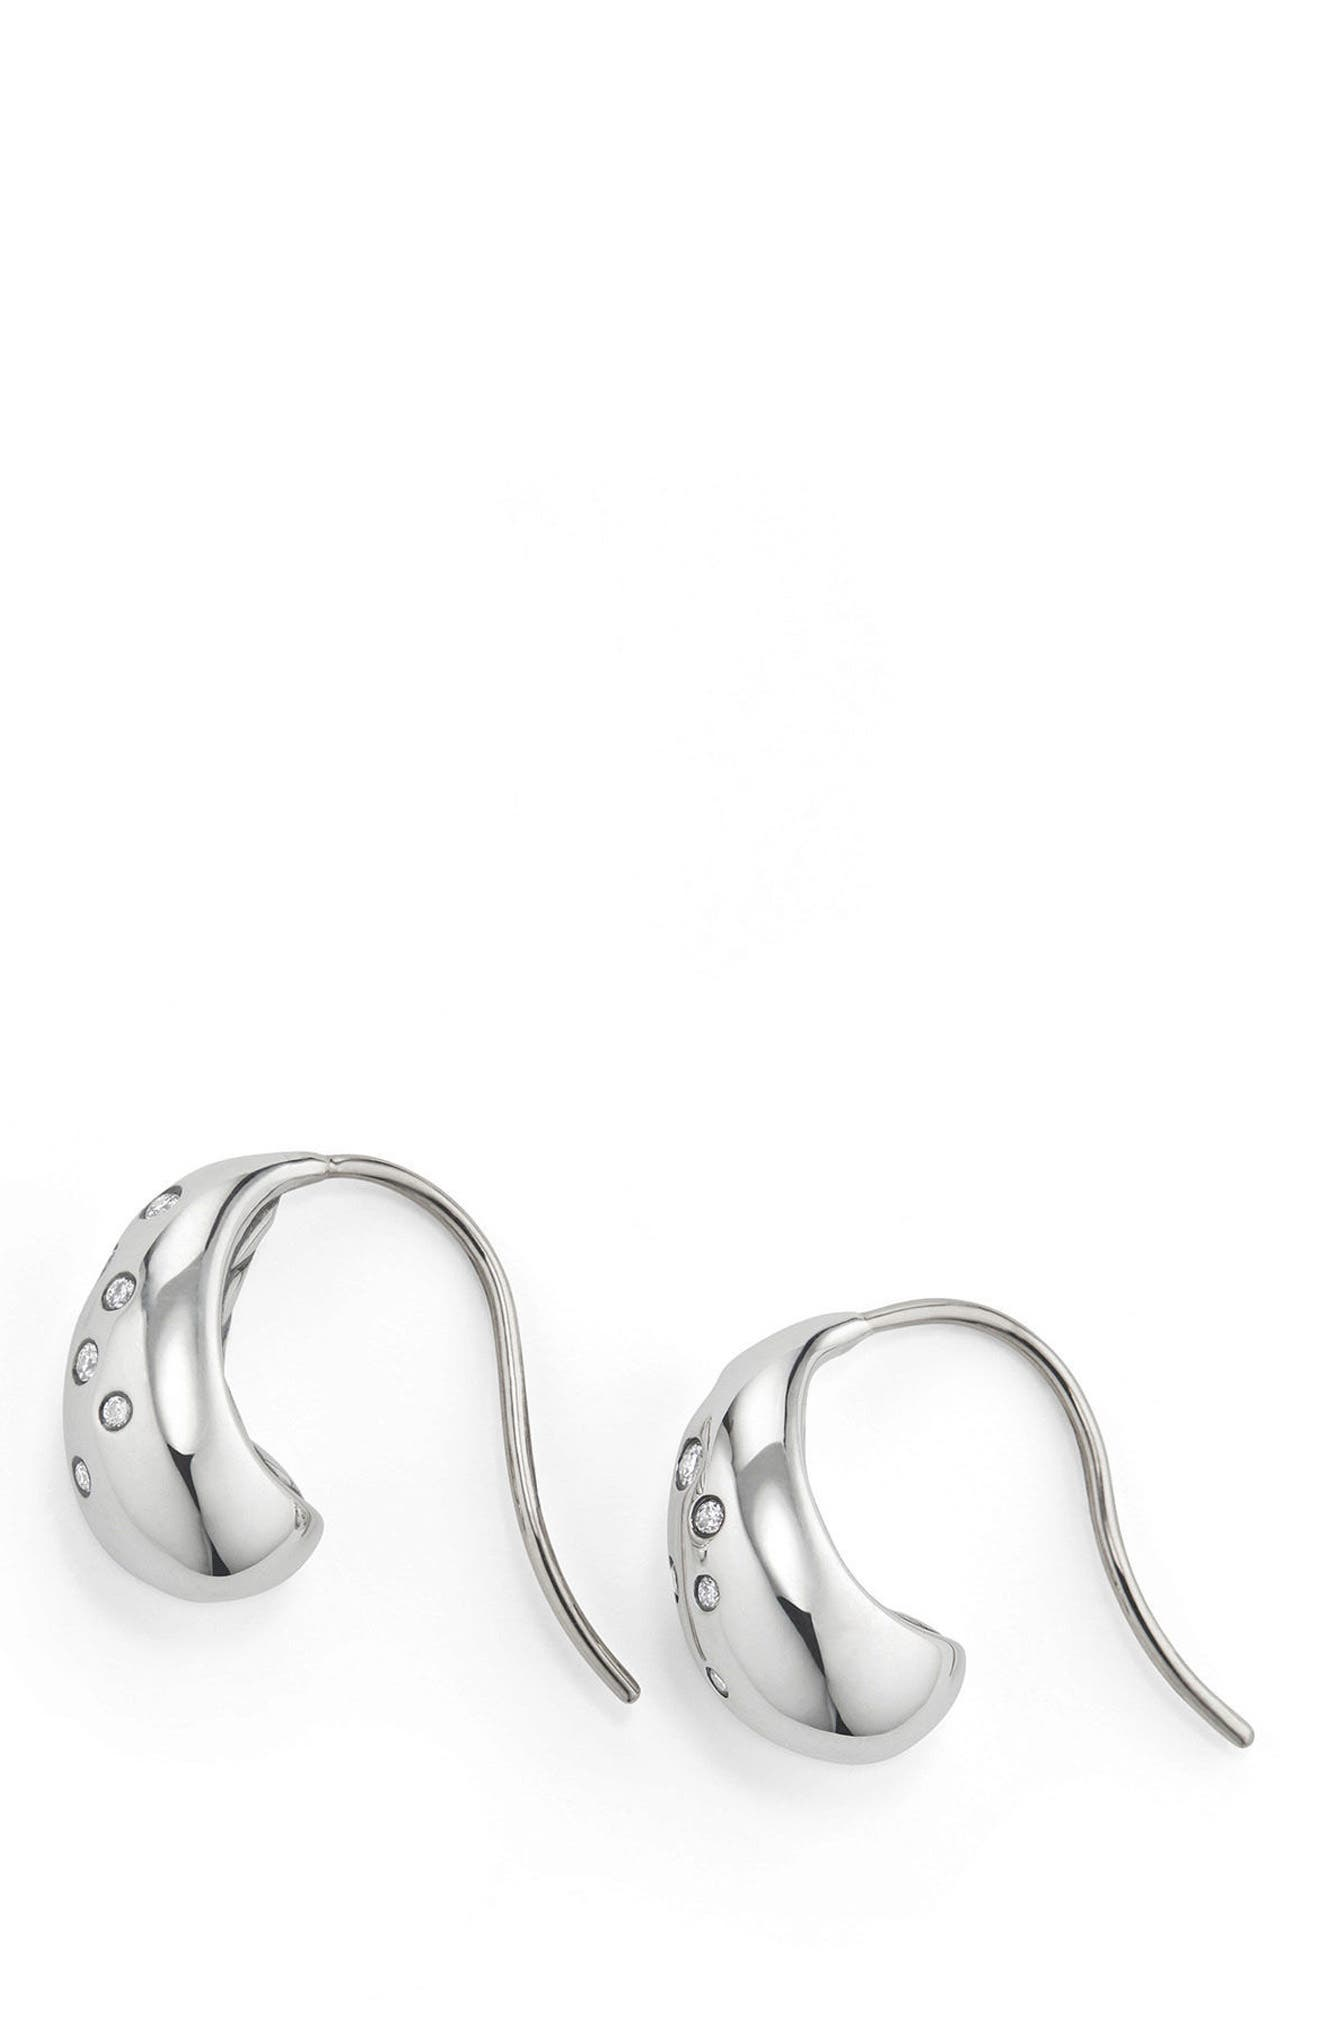 DAVID YURMAN, Pure Form Earrings with Diamonds, 15mm, Alternate thumbnail 2, color, SILVER